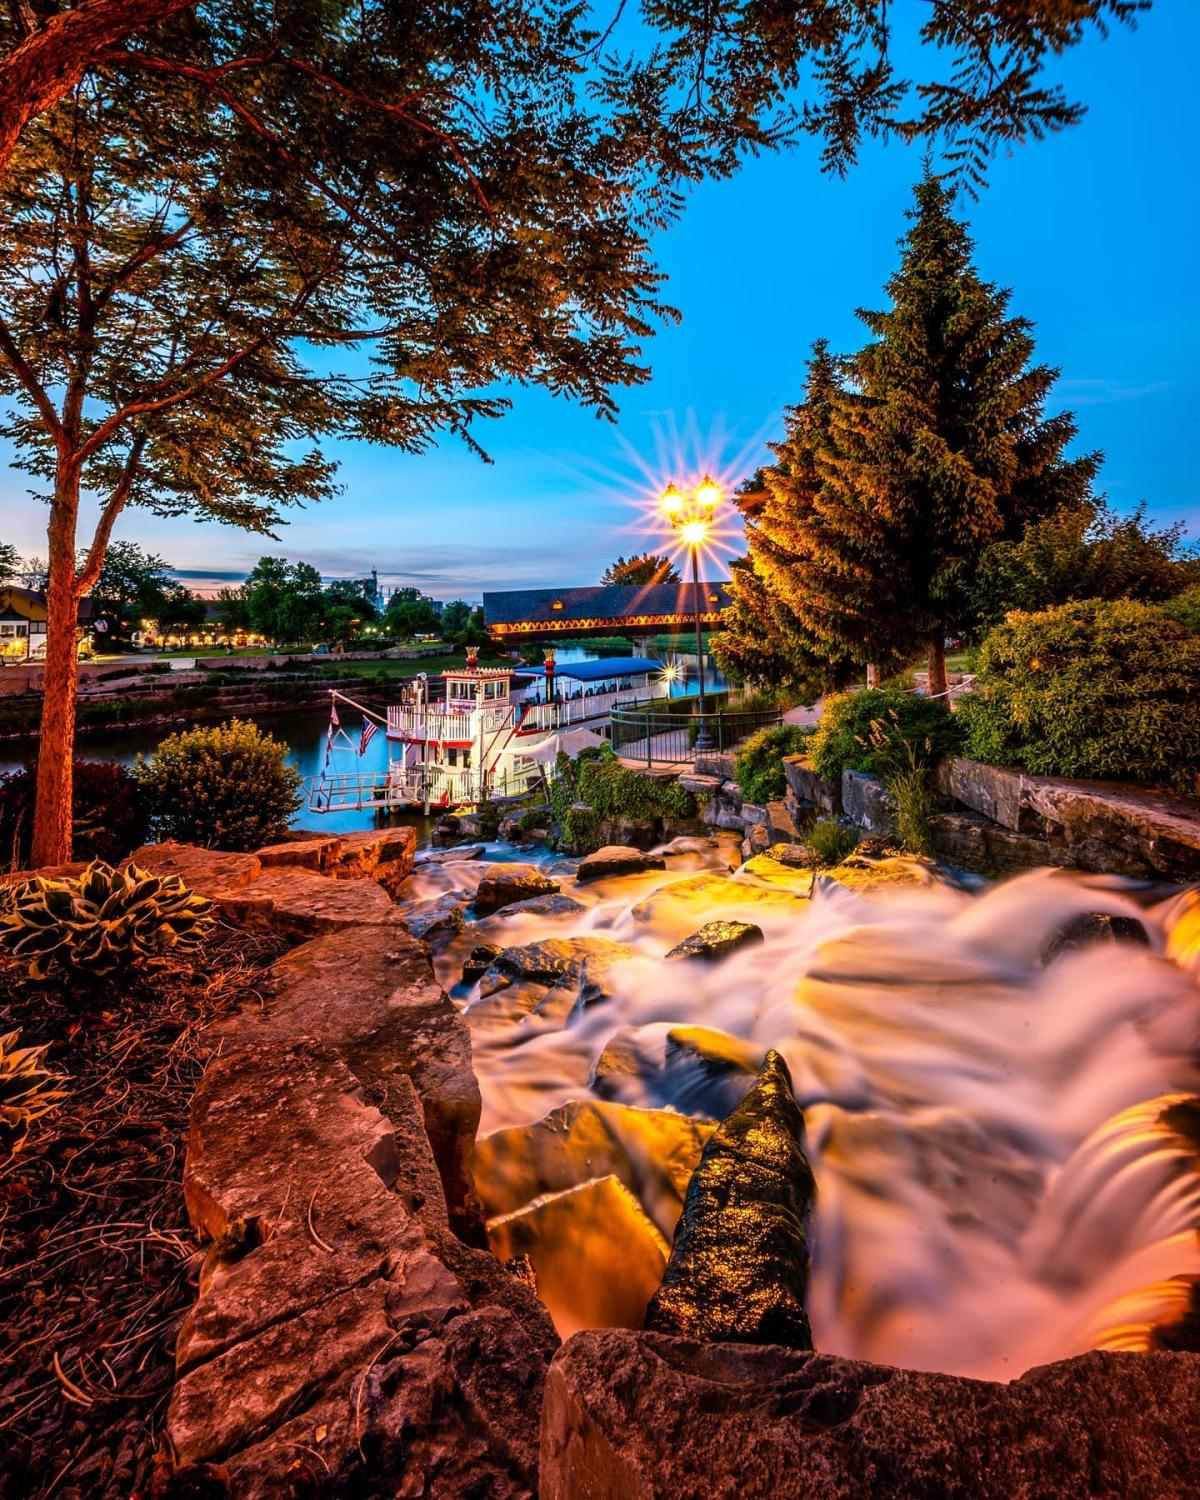 Bavarian Belle Riverboat docked by the Frankenmuth River Place Shops waterfalls at dusk